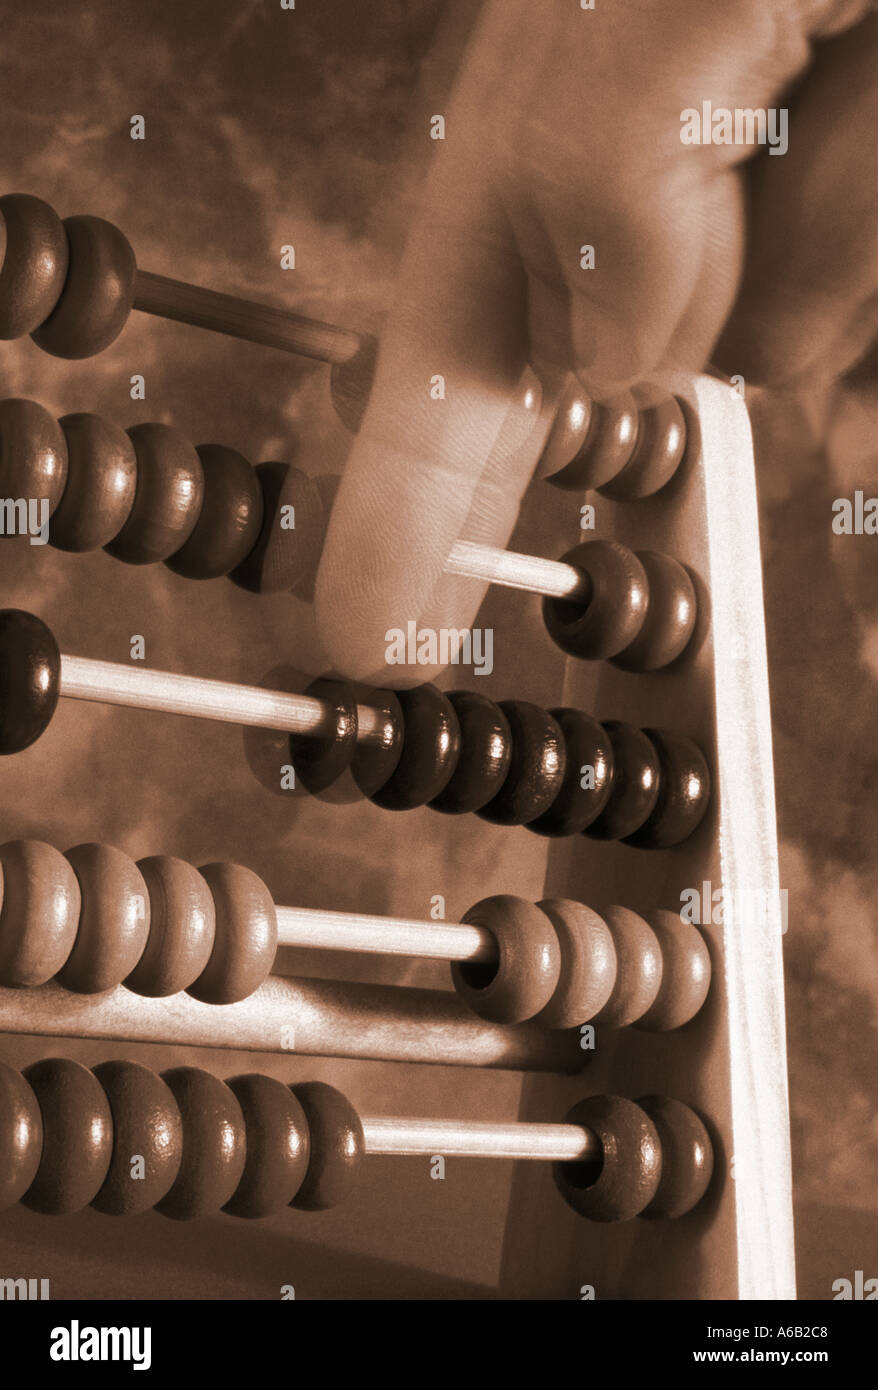 moving finger counting on an abacus - Stock Image